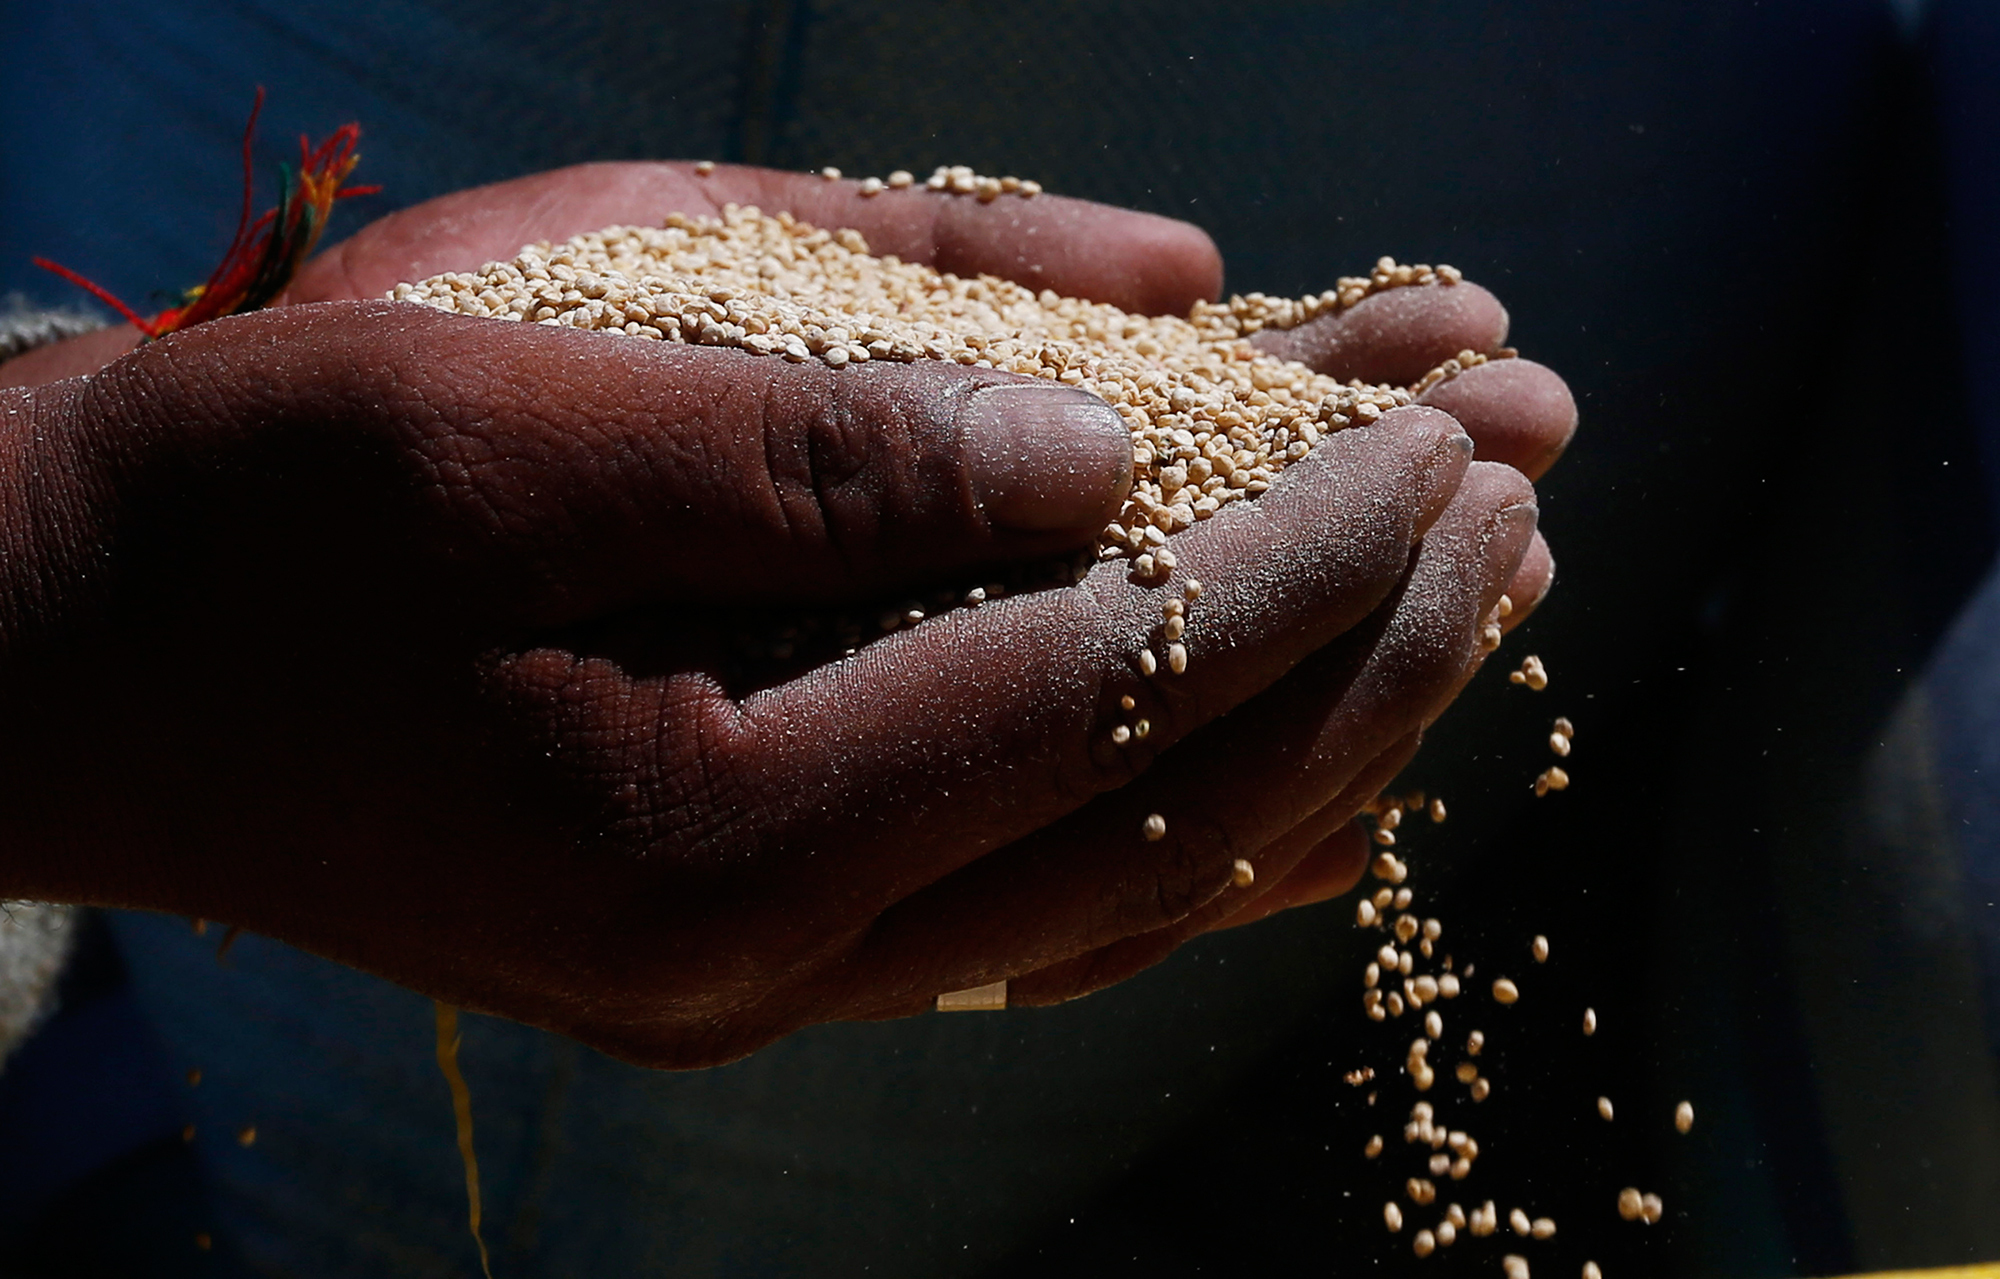 Your Quinoa Habit Really Did Help Peru's Poor. But There's Trouble Ahead